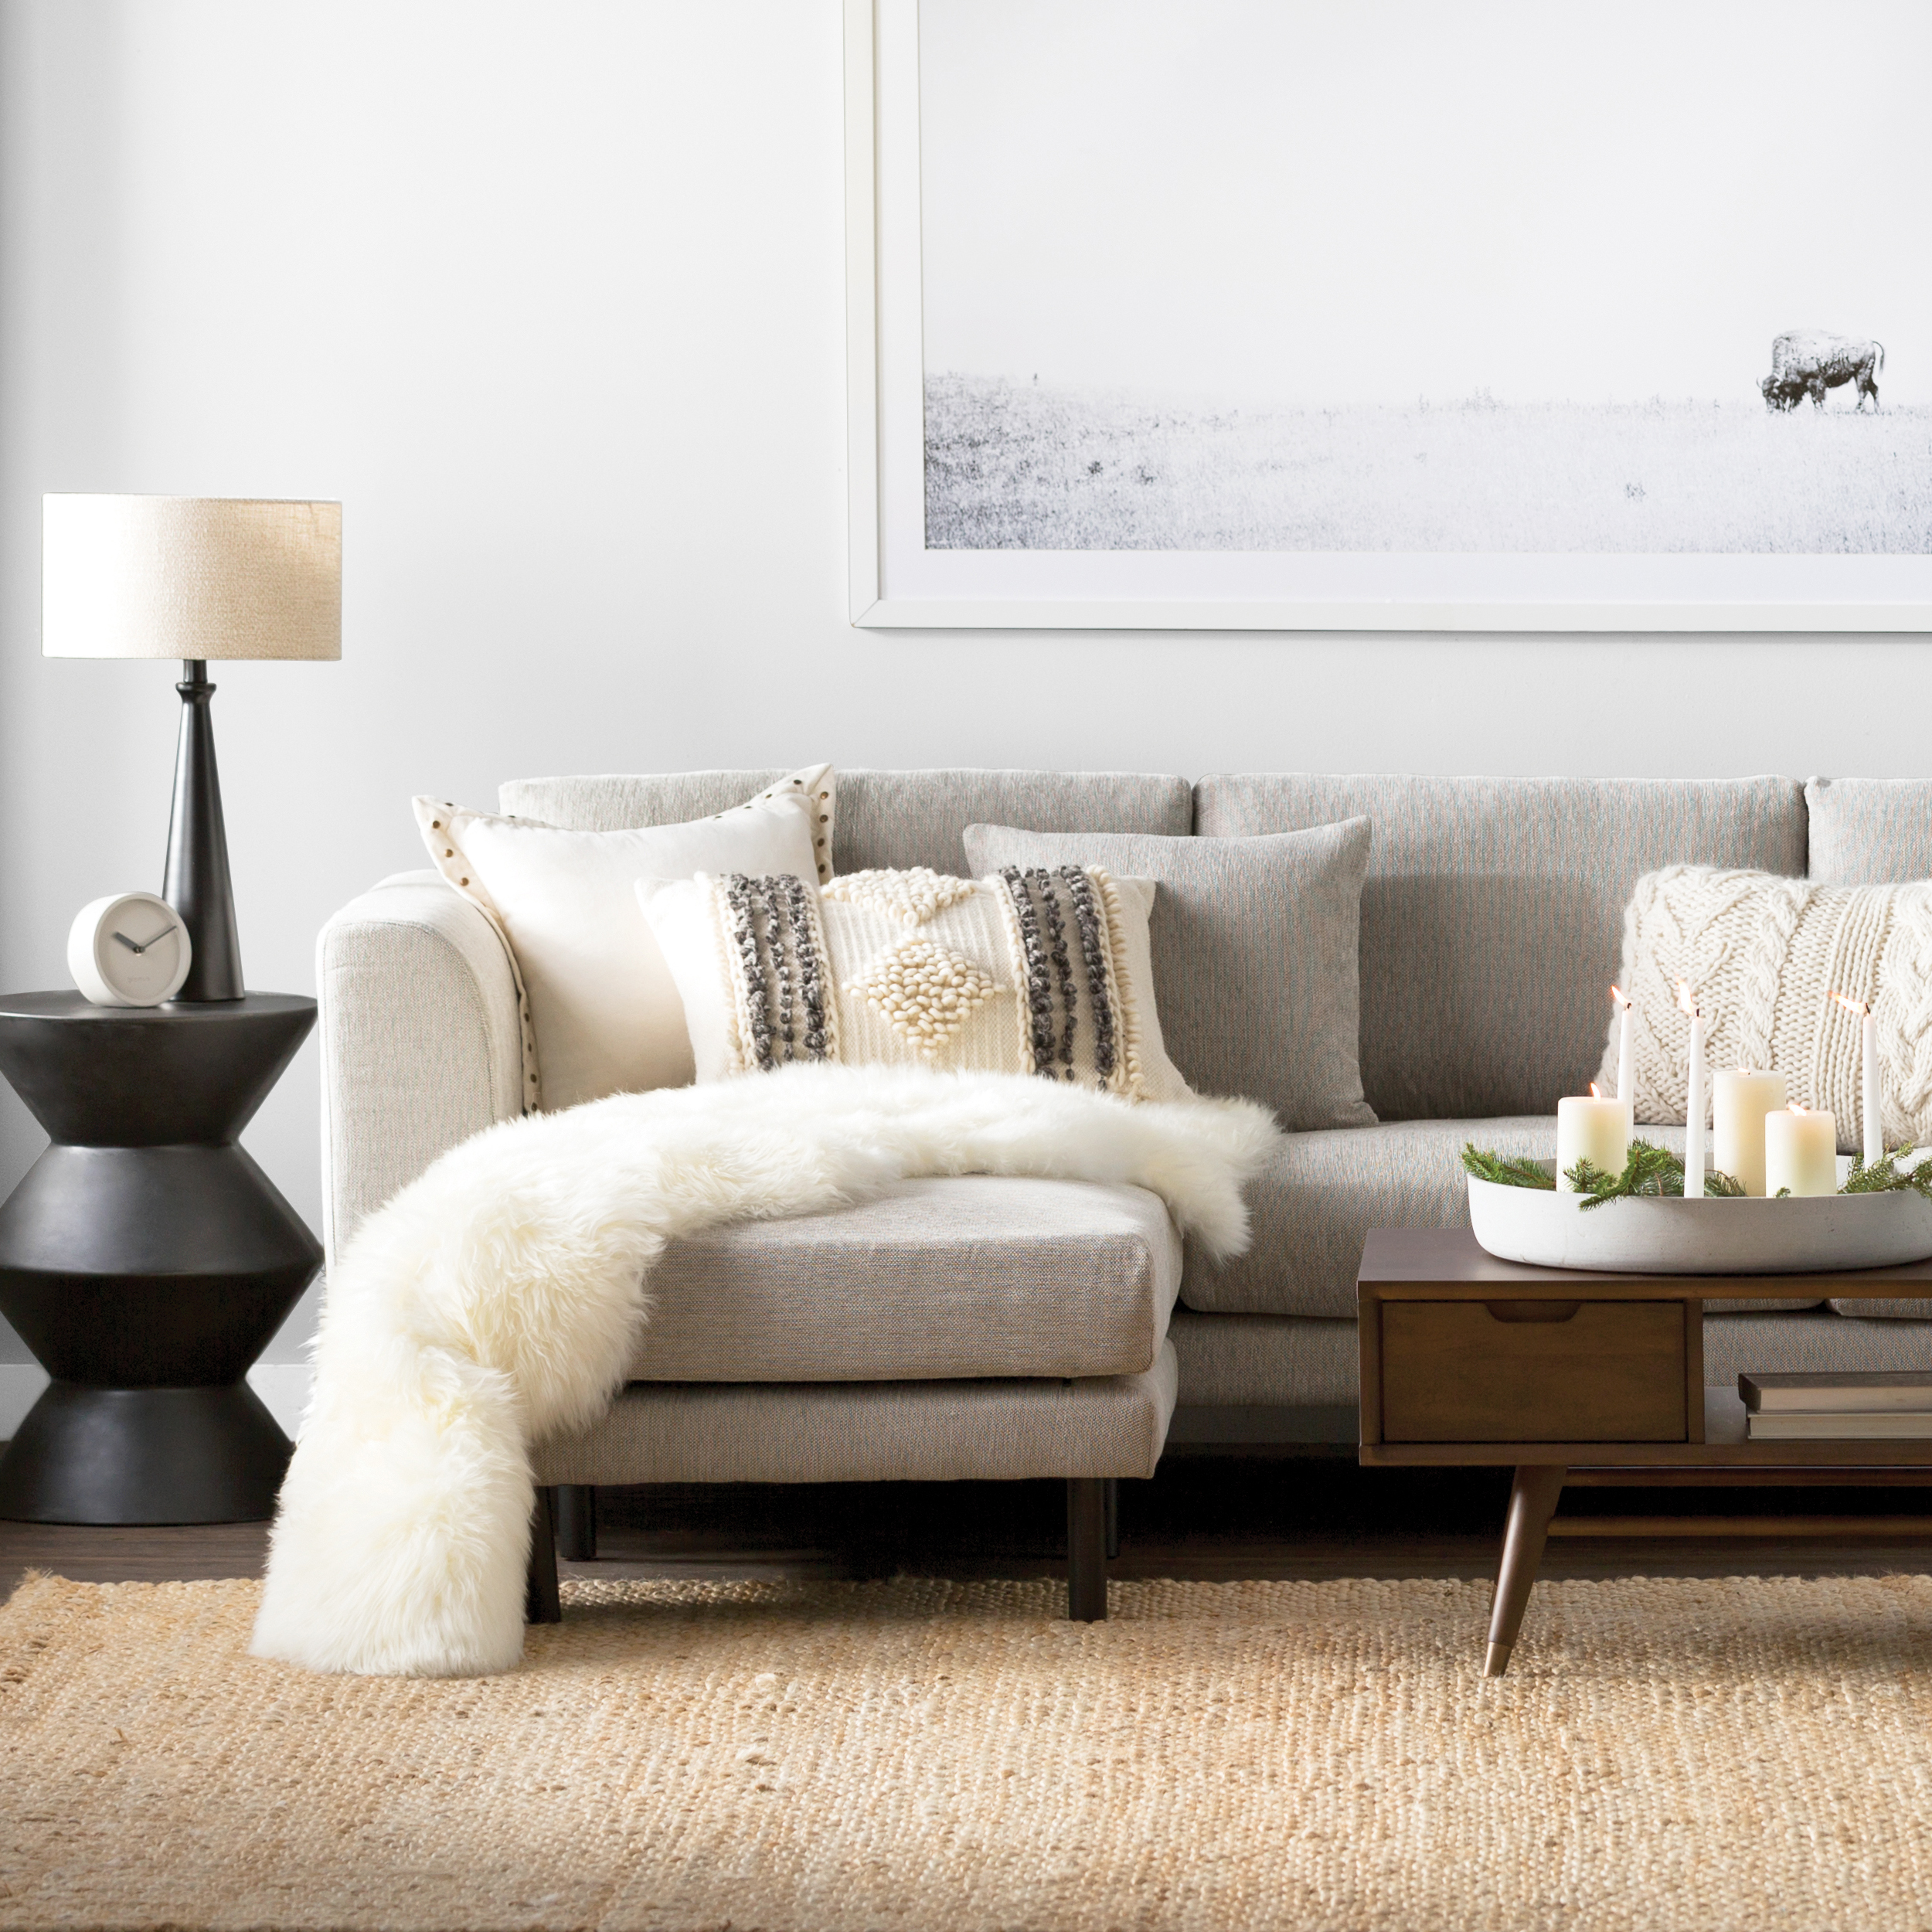 Livingroomfurniture: Living Room Furniture